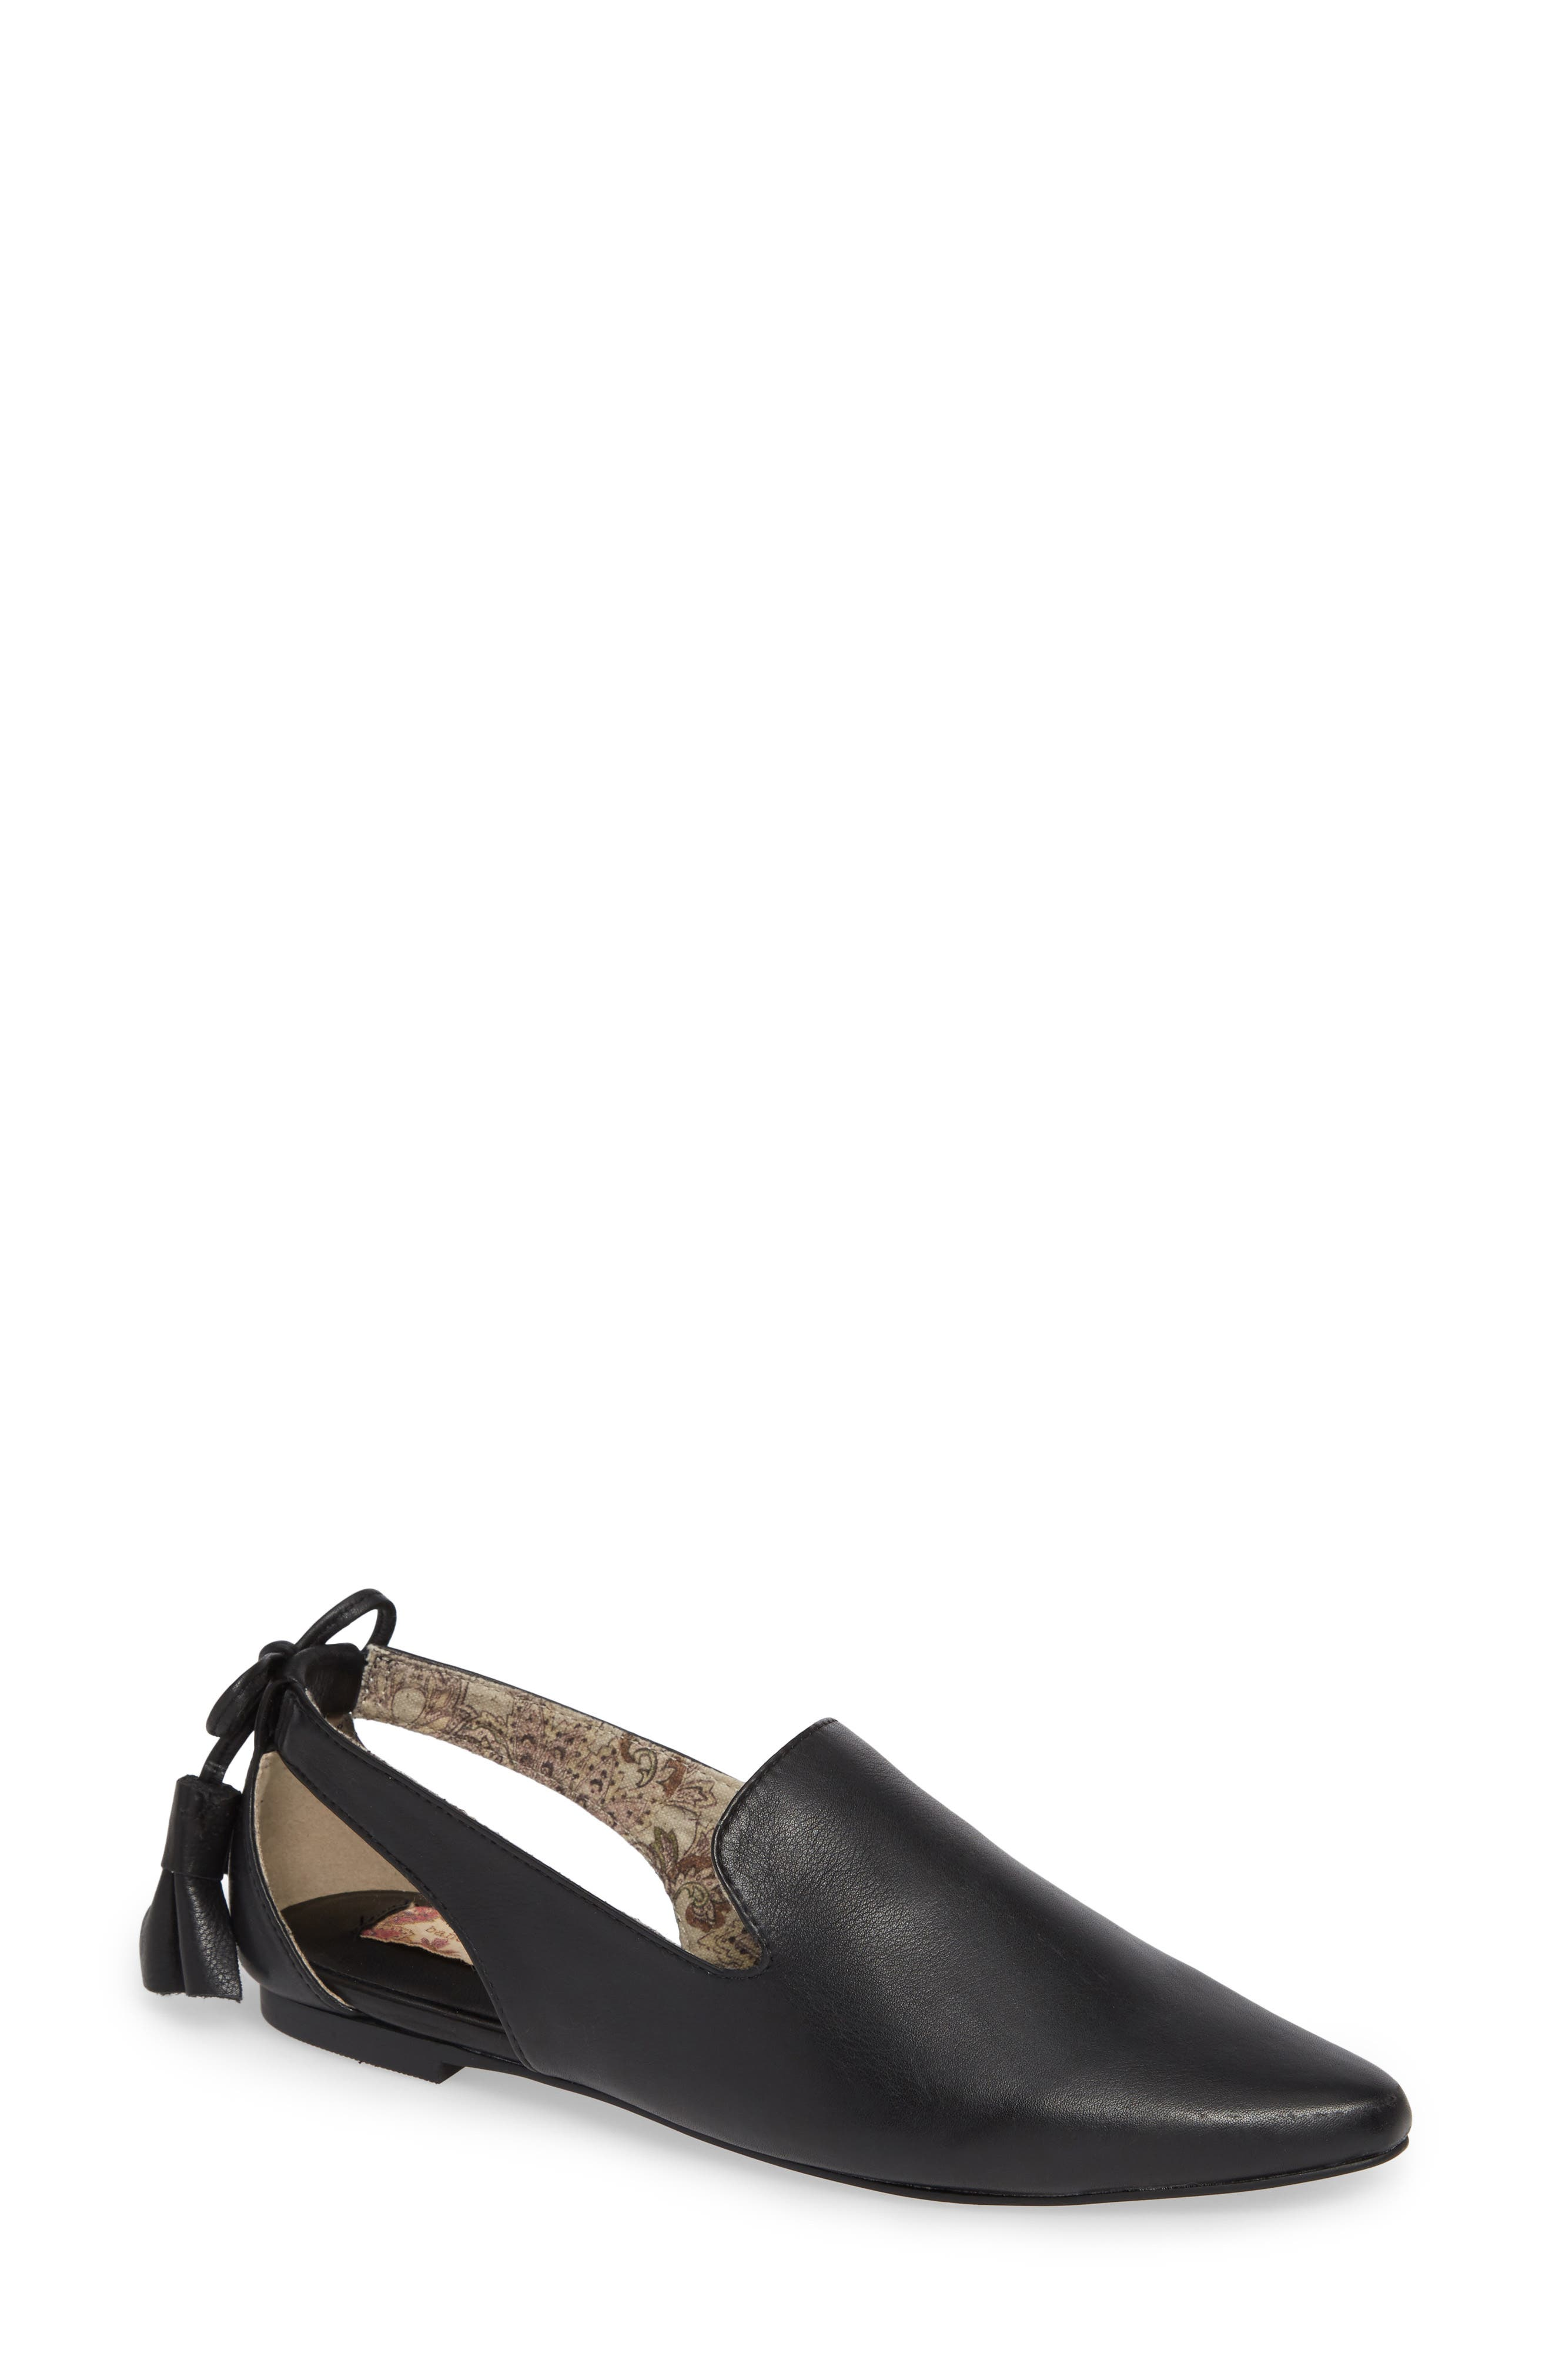 Songbird Loafer,                         Main,                         color, BLACK LEATHER